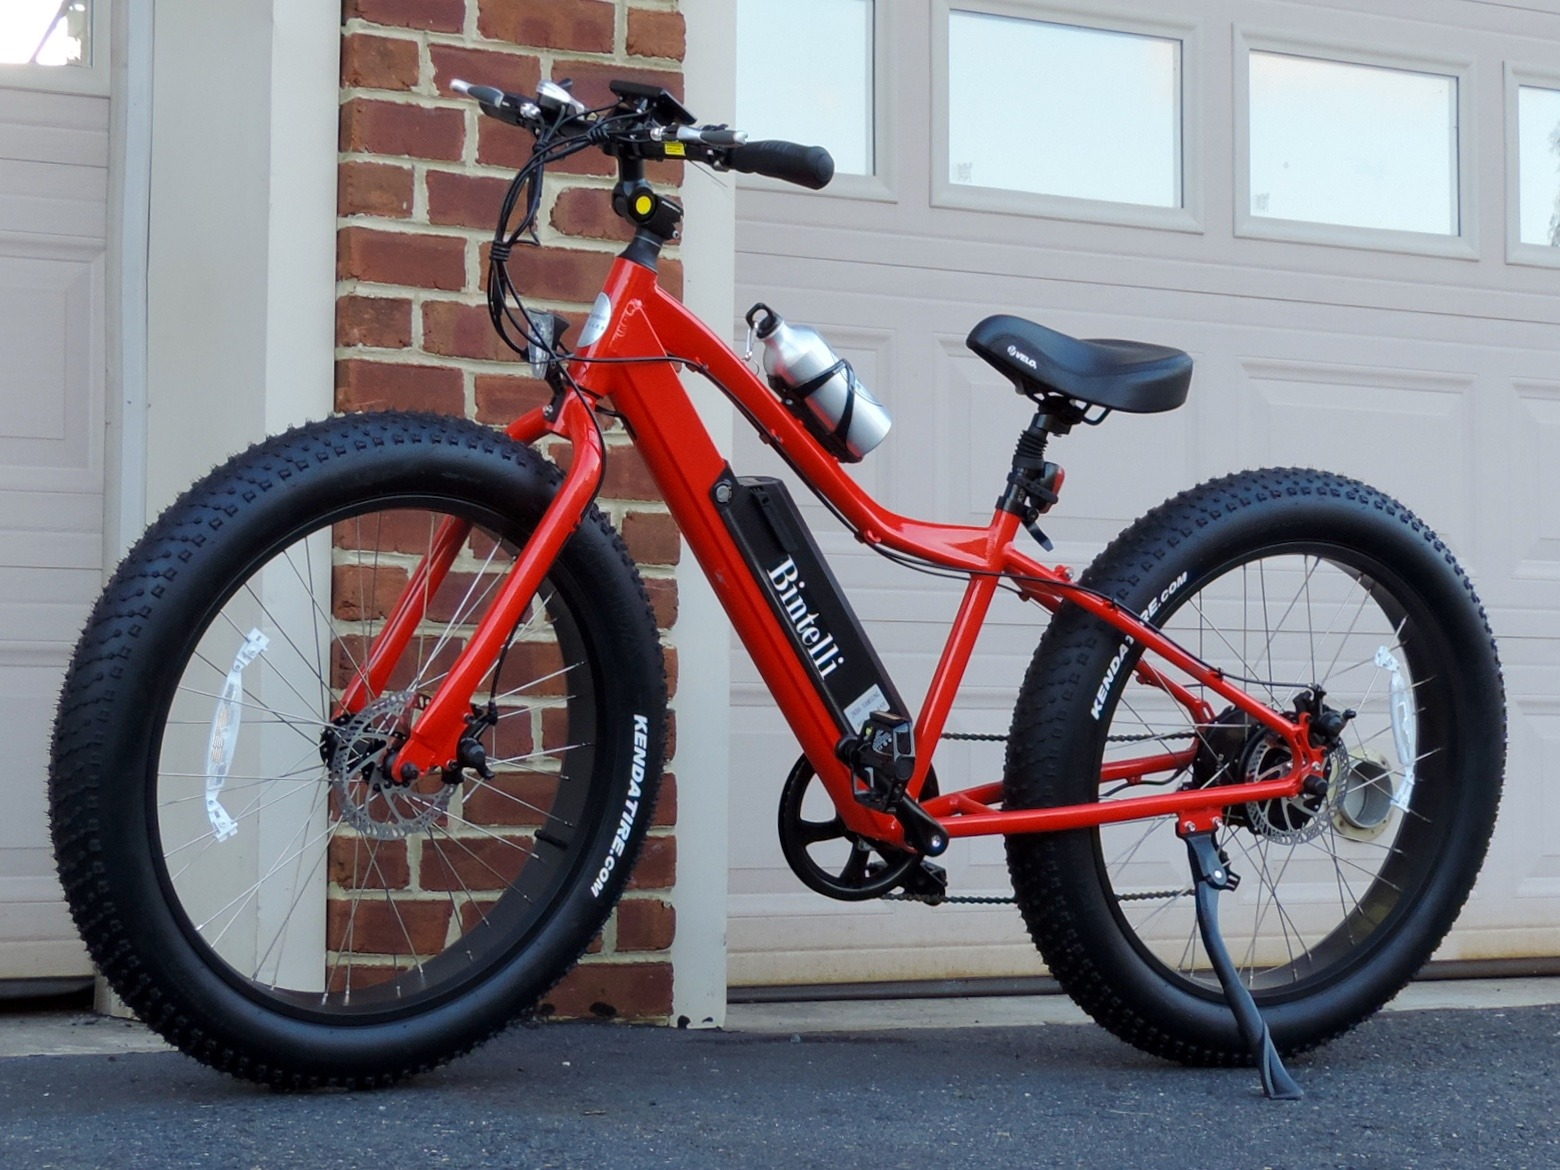 New 2019 Bintelli M1 Electric Fat Tire Bike | Edgewater Park, NJ